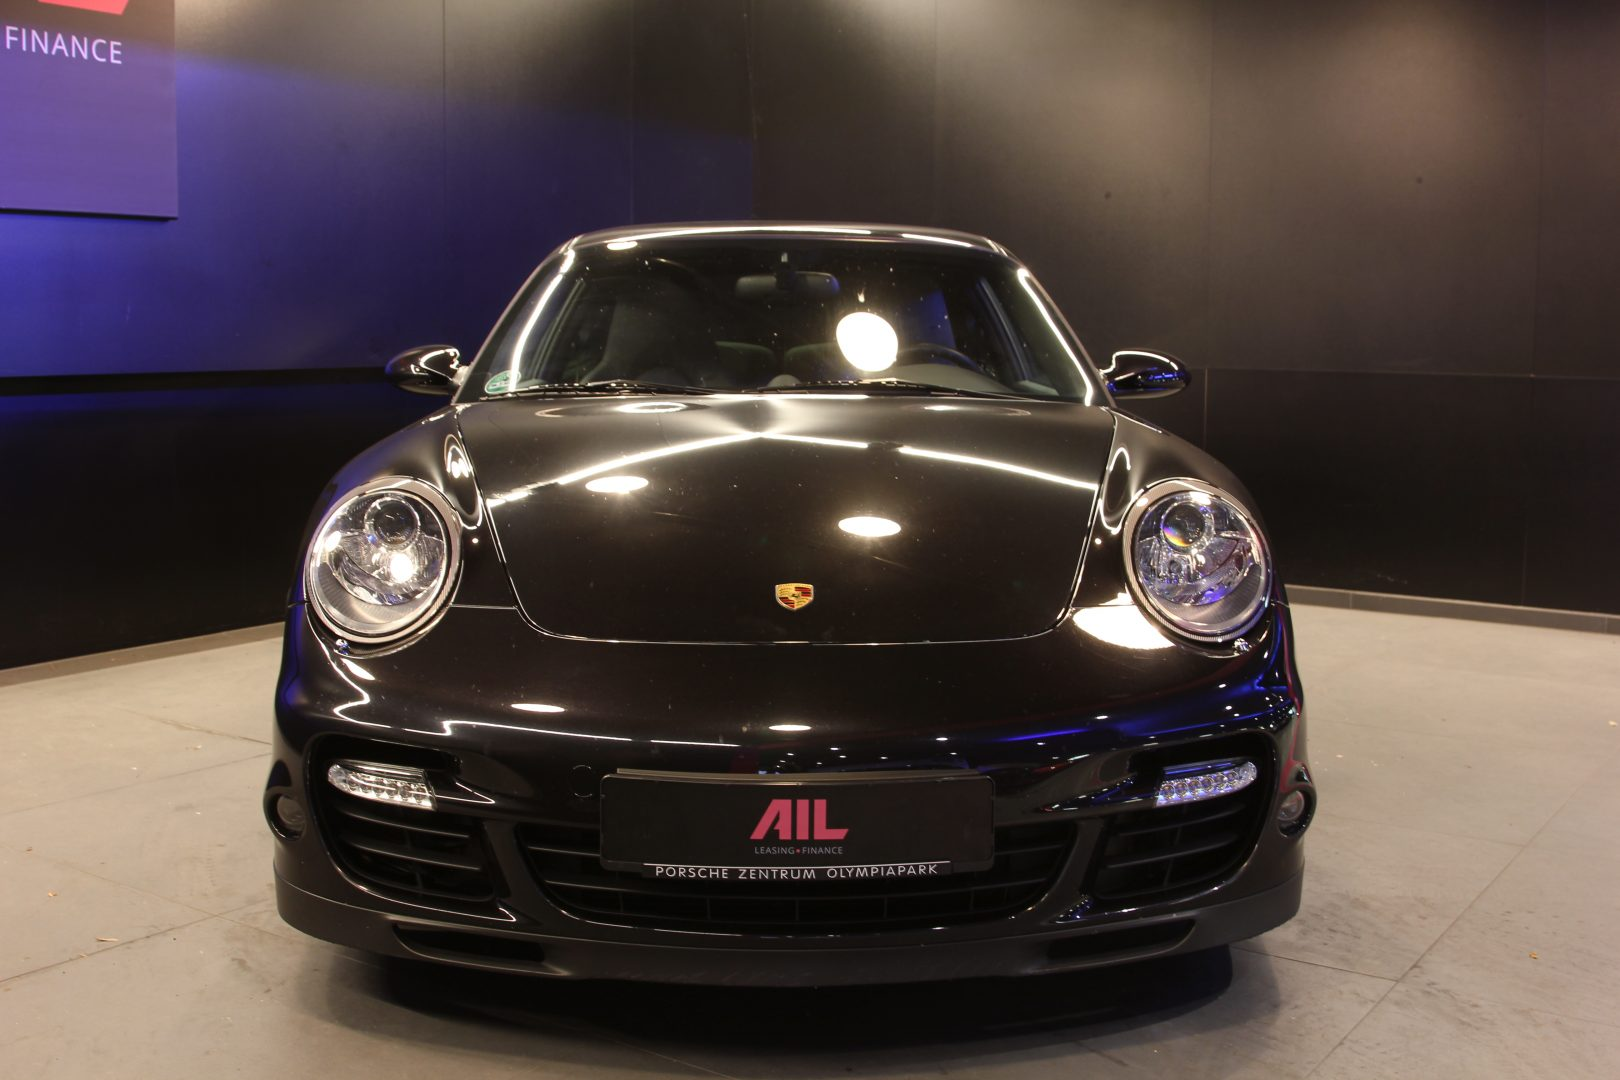 AIL Porsche 997 Turbo  10